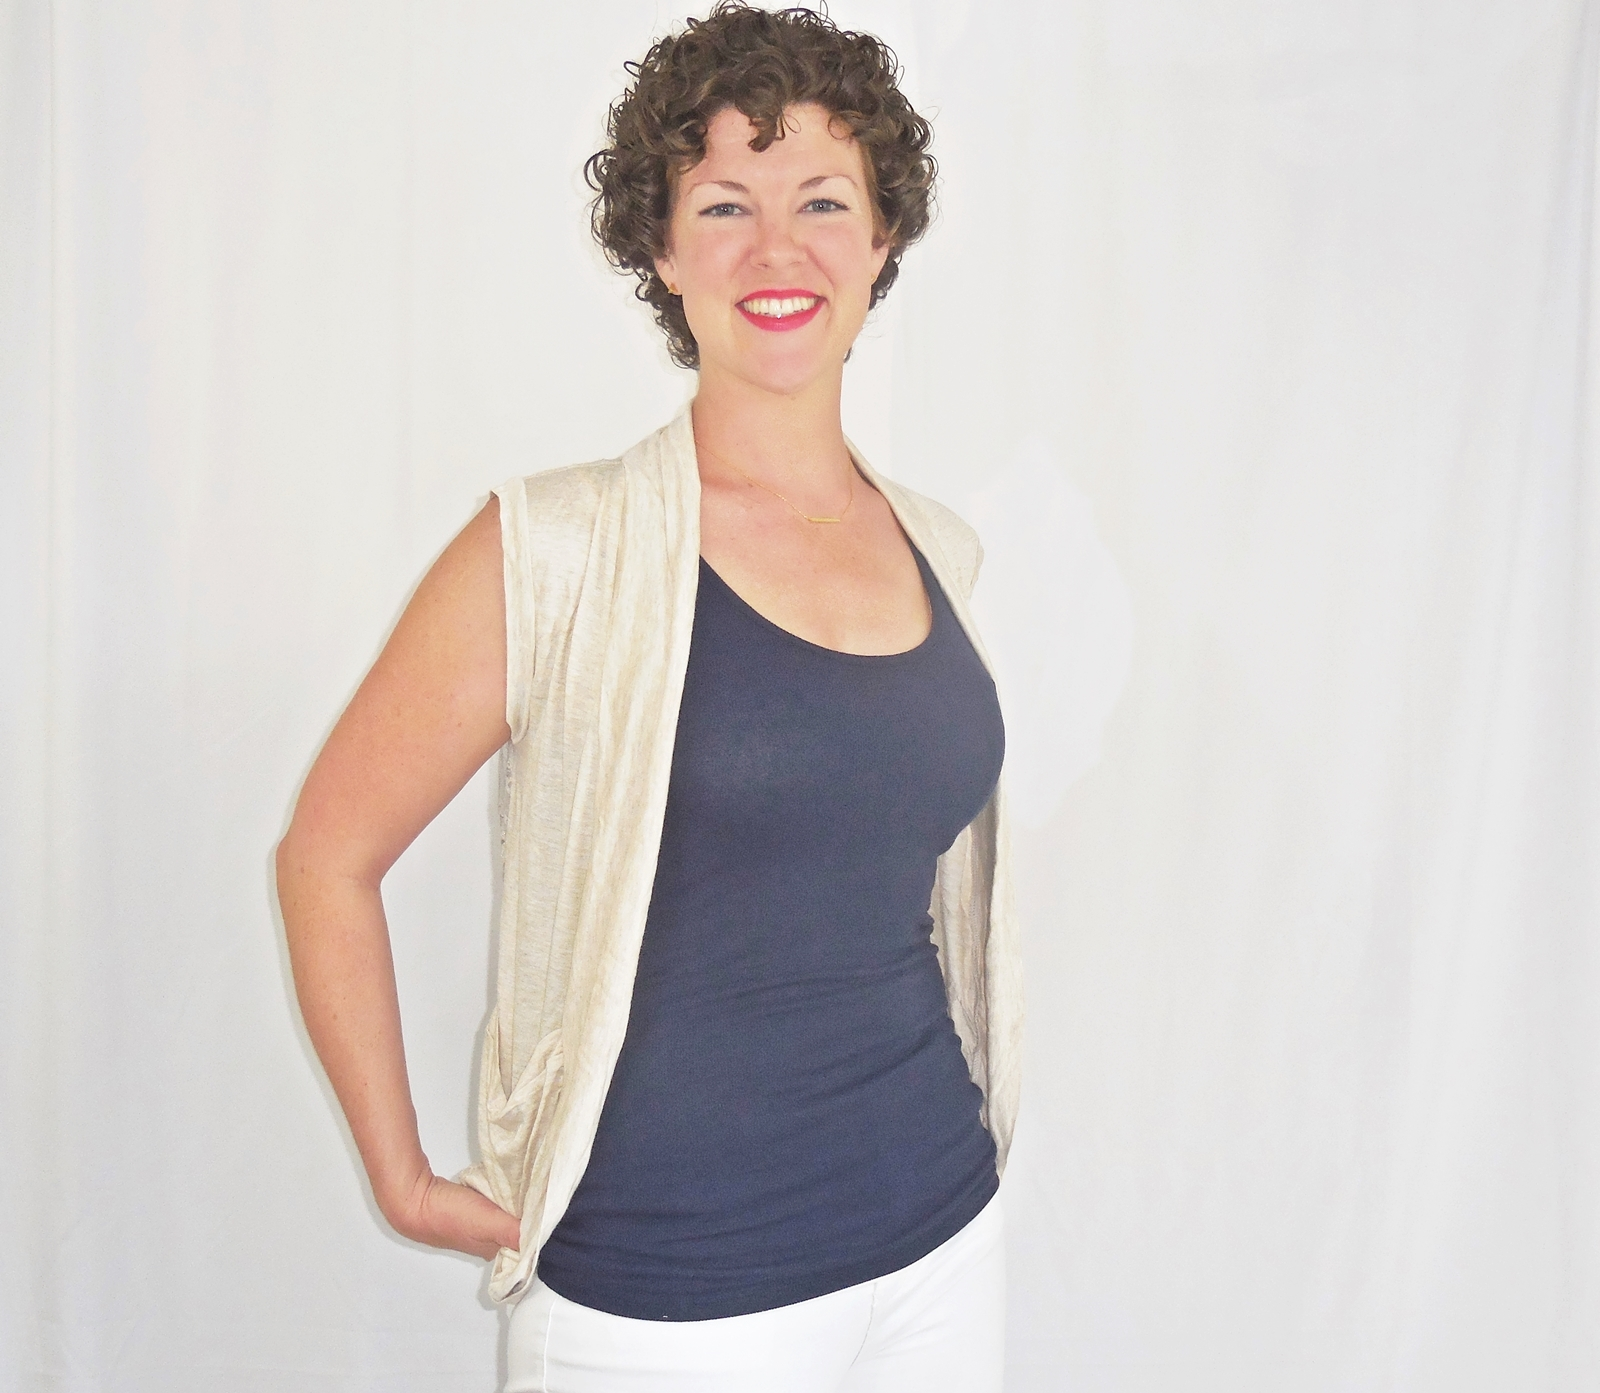 Beige Rayon Lace Back Vest, Lightweight Rayon Layering, Heather Beige Vest